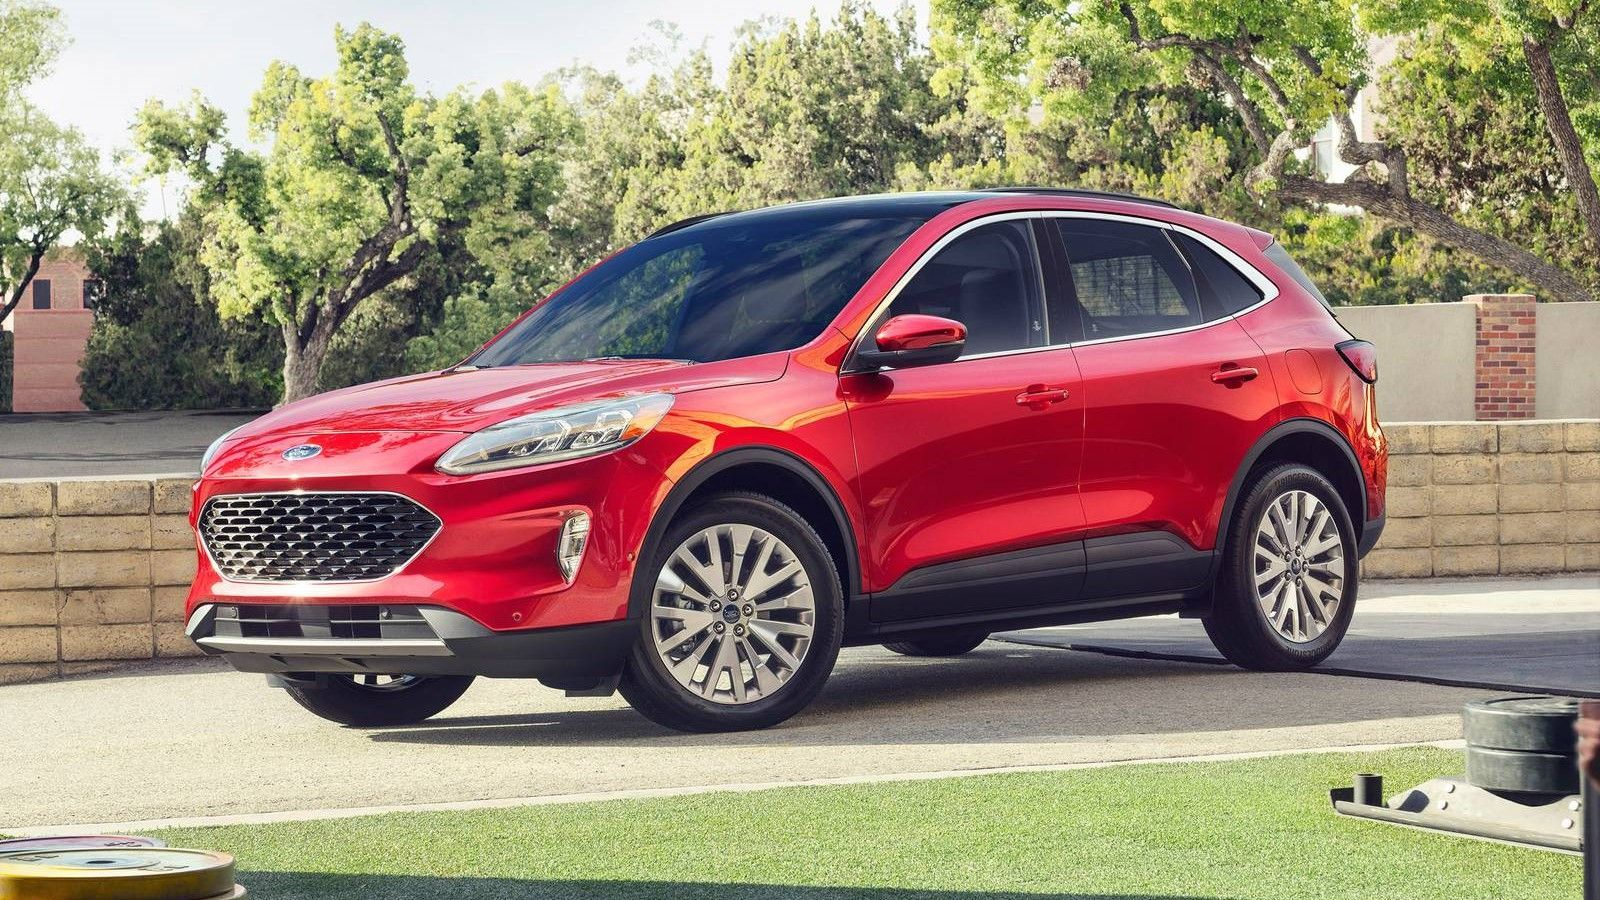 2021 Ford Escape Suv Review Trims Prices Features Towing Capacity And Rivals Comparison Ford Escape Ford Suv Reviews